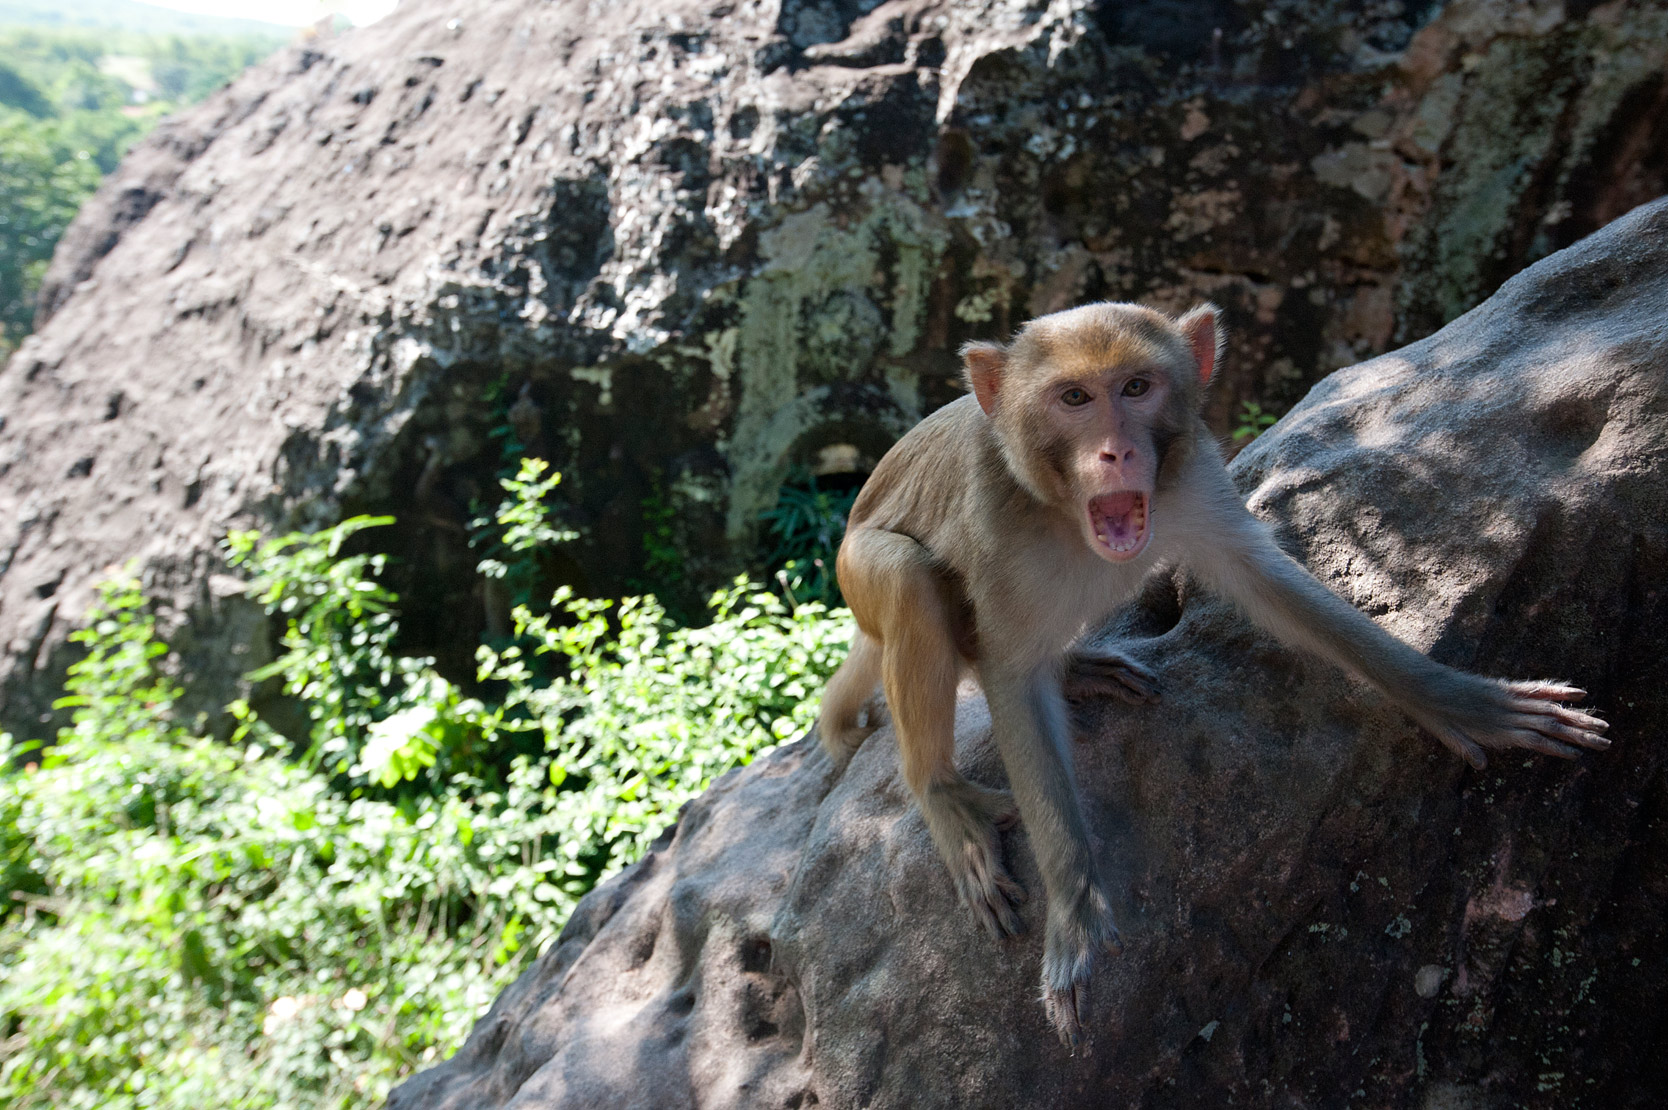 Monkey running wild on sandstone rocks in Shwe Ba Hill village, Monywa township, Sagaing Division.